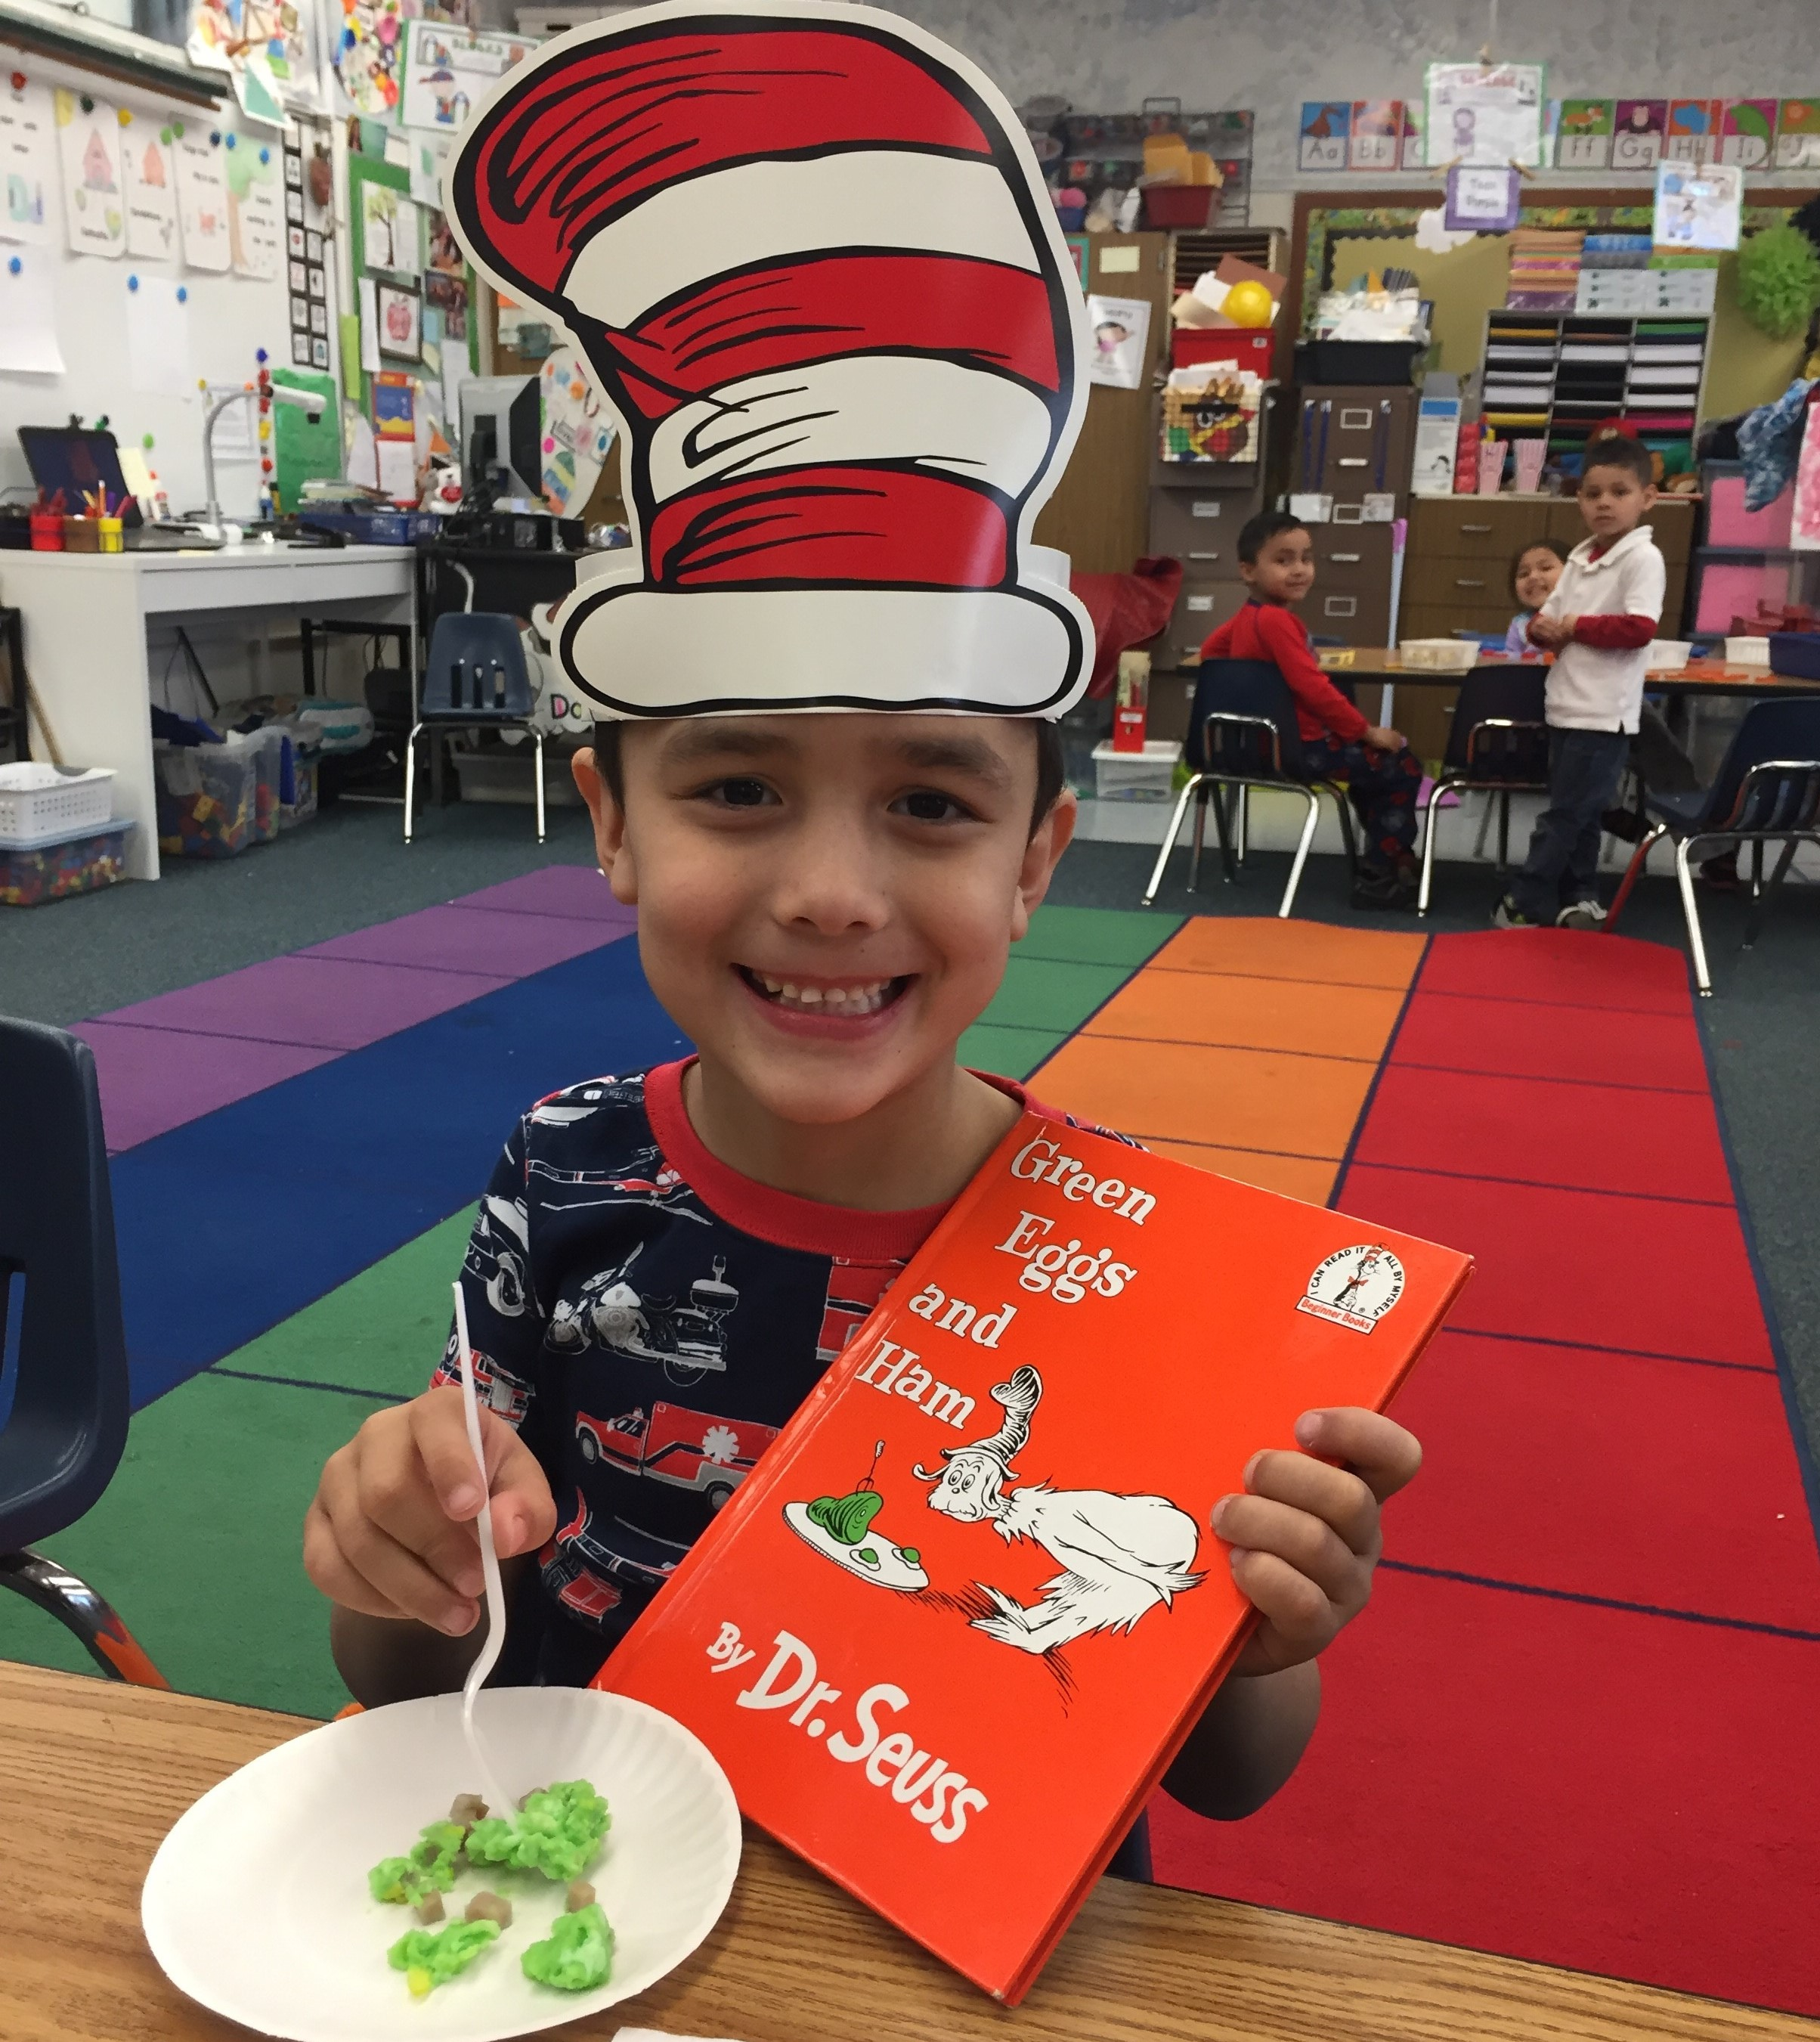 Photo of student with Dr. Seuss book, hat, and green eggs and ham